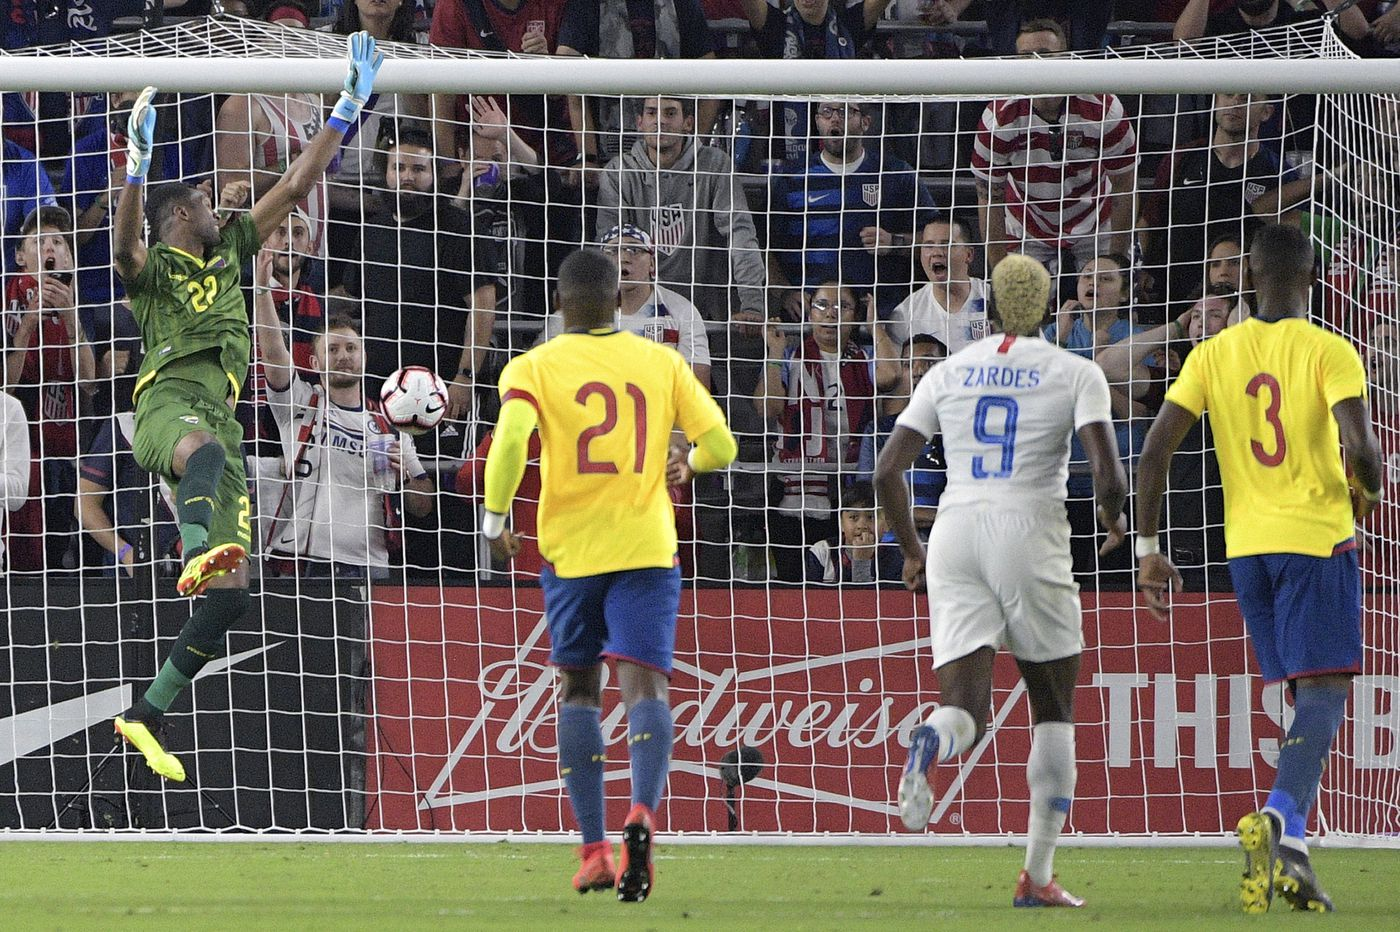 Gregg Berhalter gets third straight win as USMNT beats Ecuador 1-0 on fluke goal